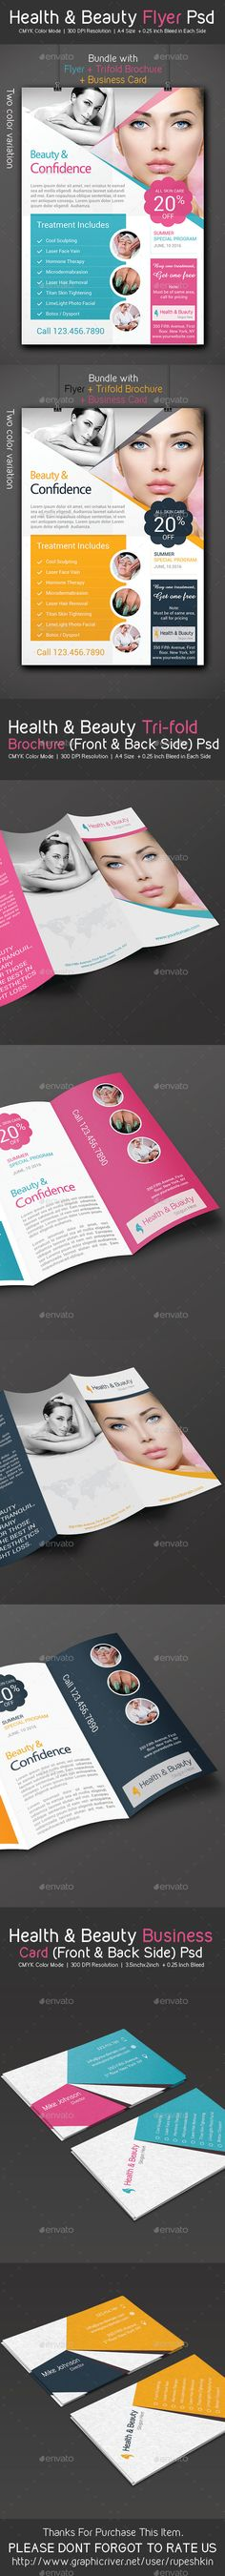 Health & Beauty Flyer - Trifold Brochure - Business Card Pack - Brochures Print Templates